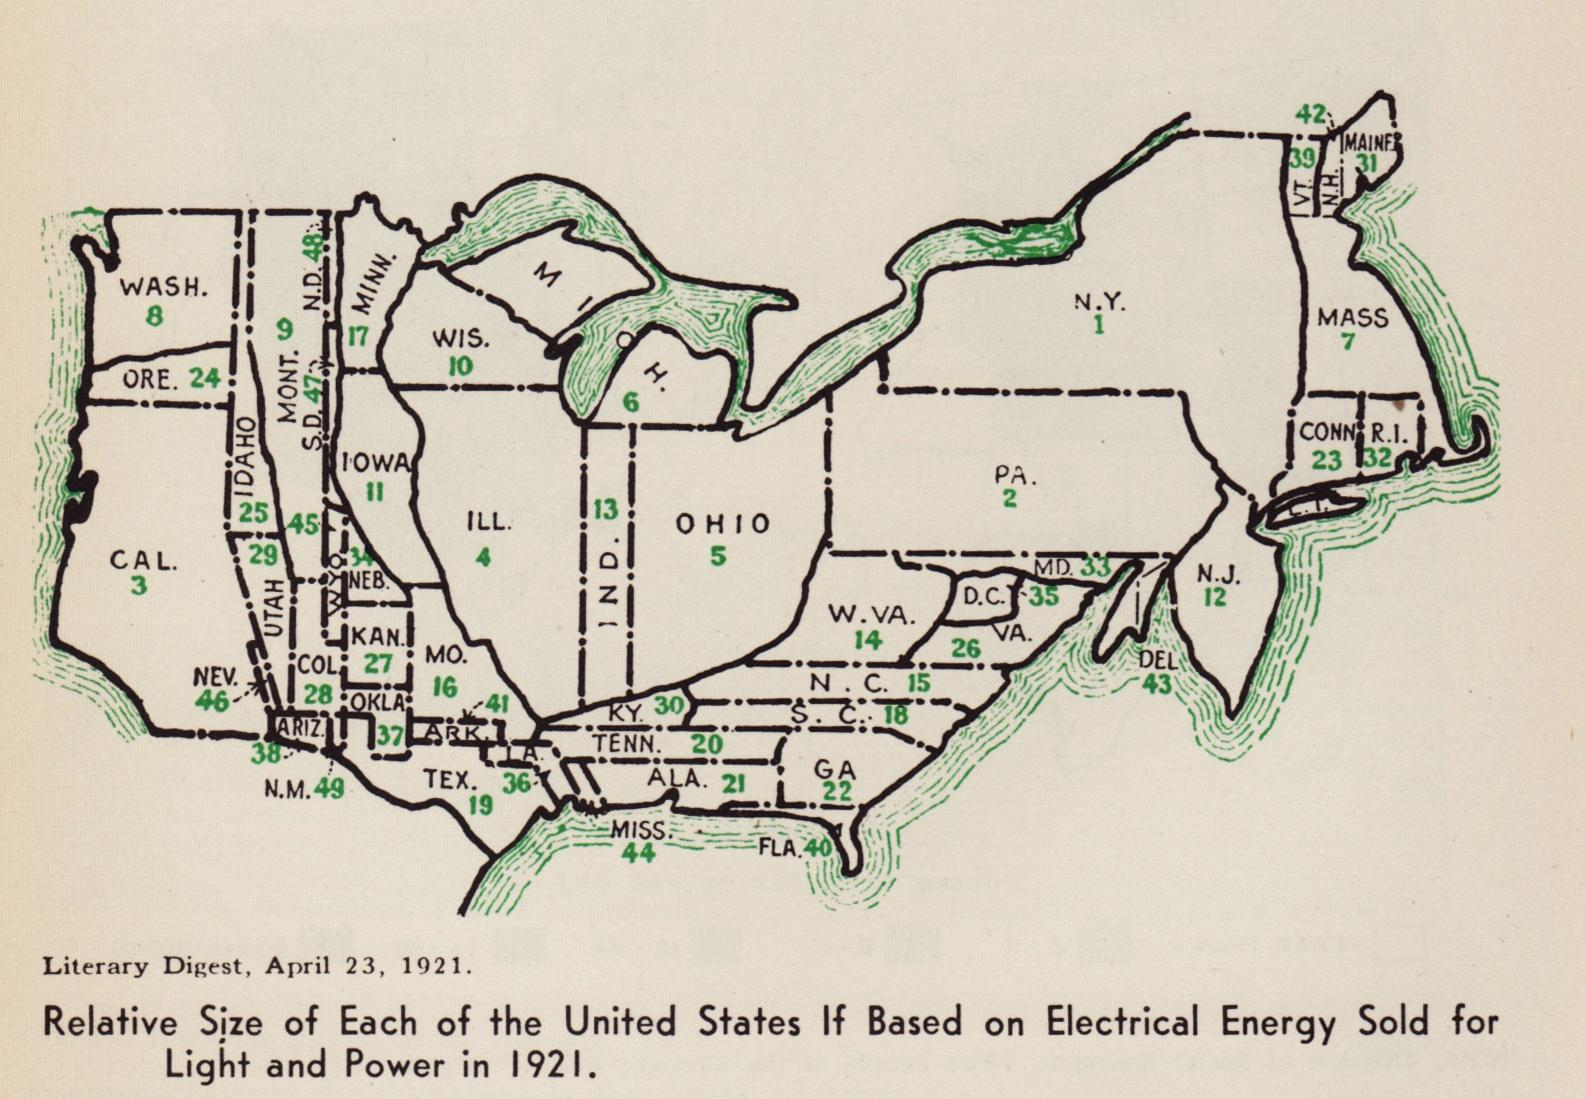 Relative size of each of the U.S. if based on electrical energy sold for light and power (1921)